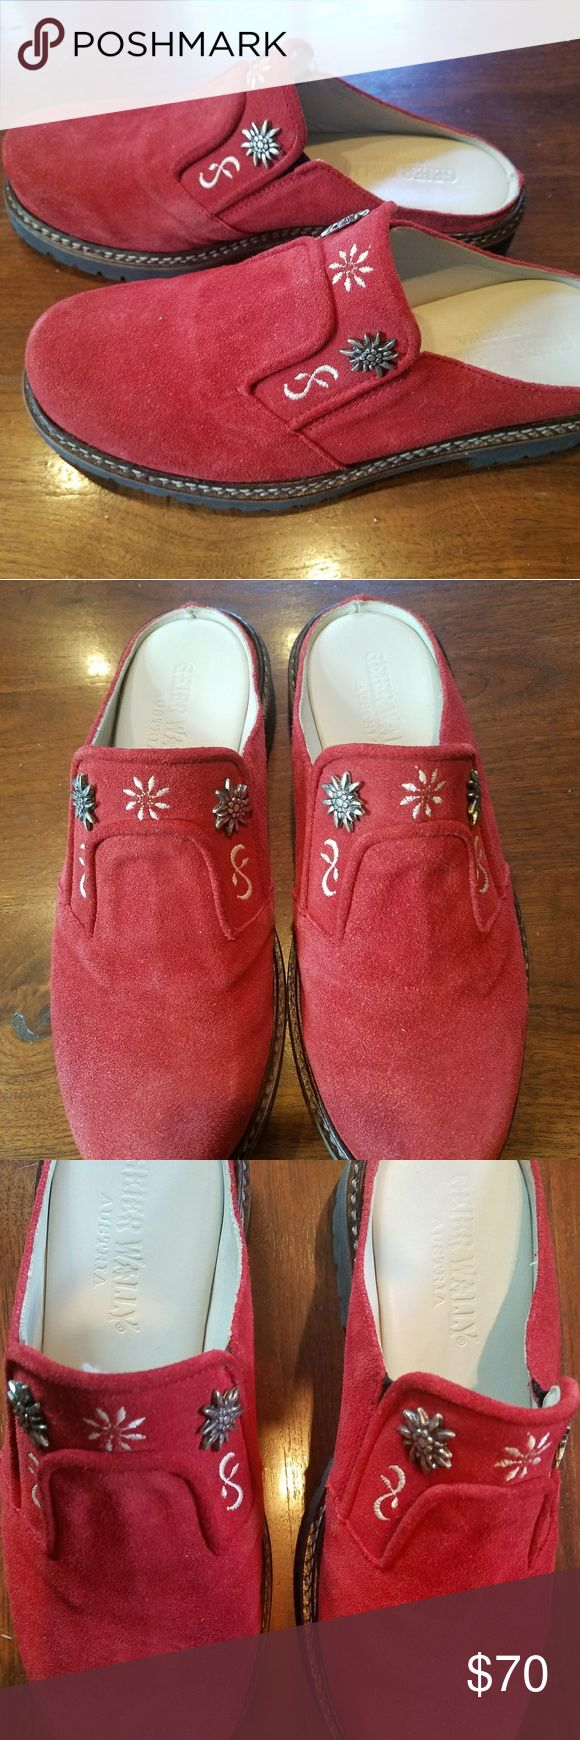 Red Suede Geier Wally Alpine style clogs NWOT NWOT Beautiful red suede Geier Wally shoes made and purchased in Austria. Two gorgeous silver Edelweiss flowers on each along with embroidery. Beautifully stitched with heavy-duty rubber soles. Never worn. Geier Wally Shoes Mules & Clogs